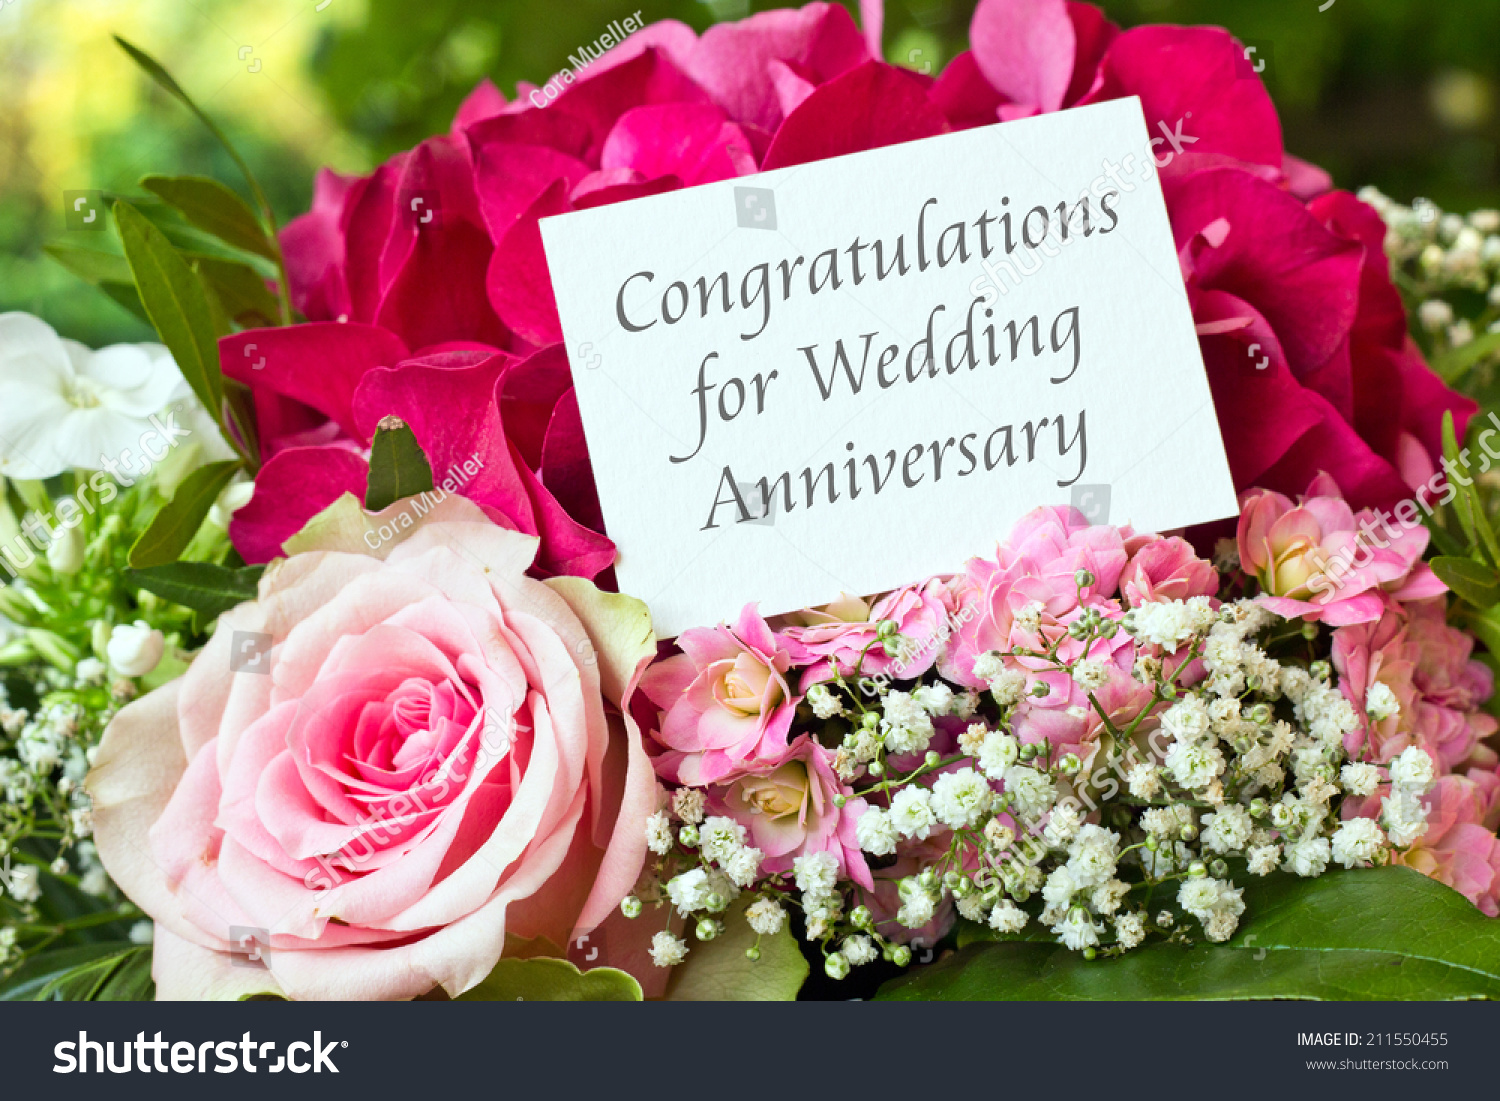 english wedding anniversary card pink flowerscongratulations stock photo 211550455 shutterstock. Black Bedroom Furniture Sets. Home Design Ideas